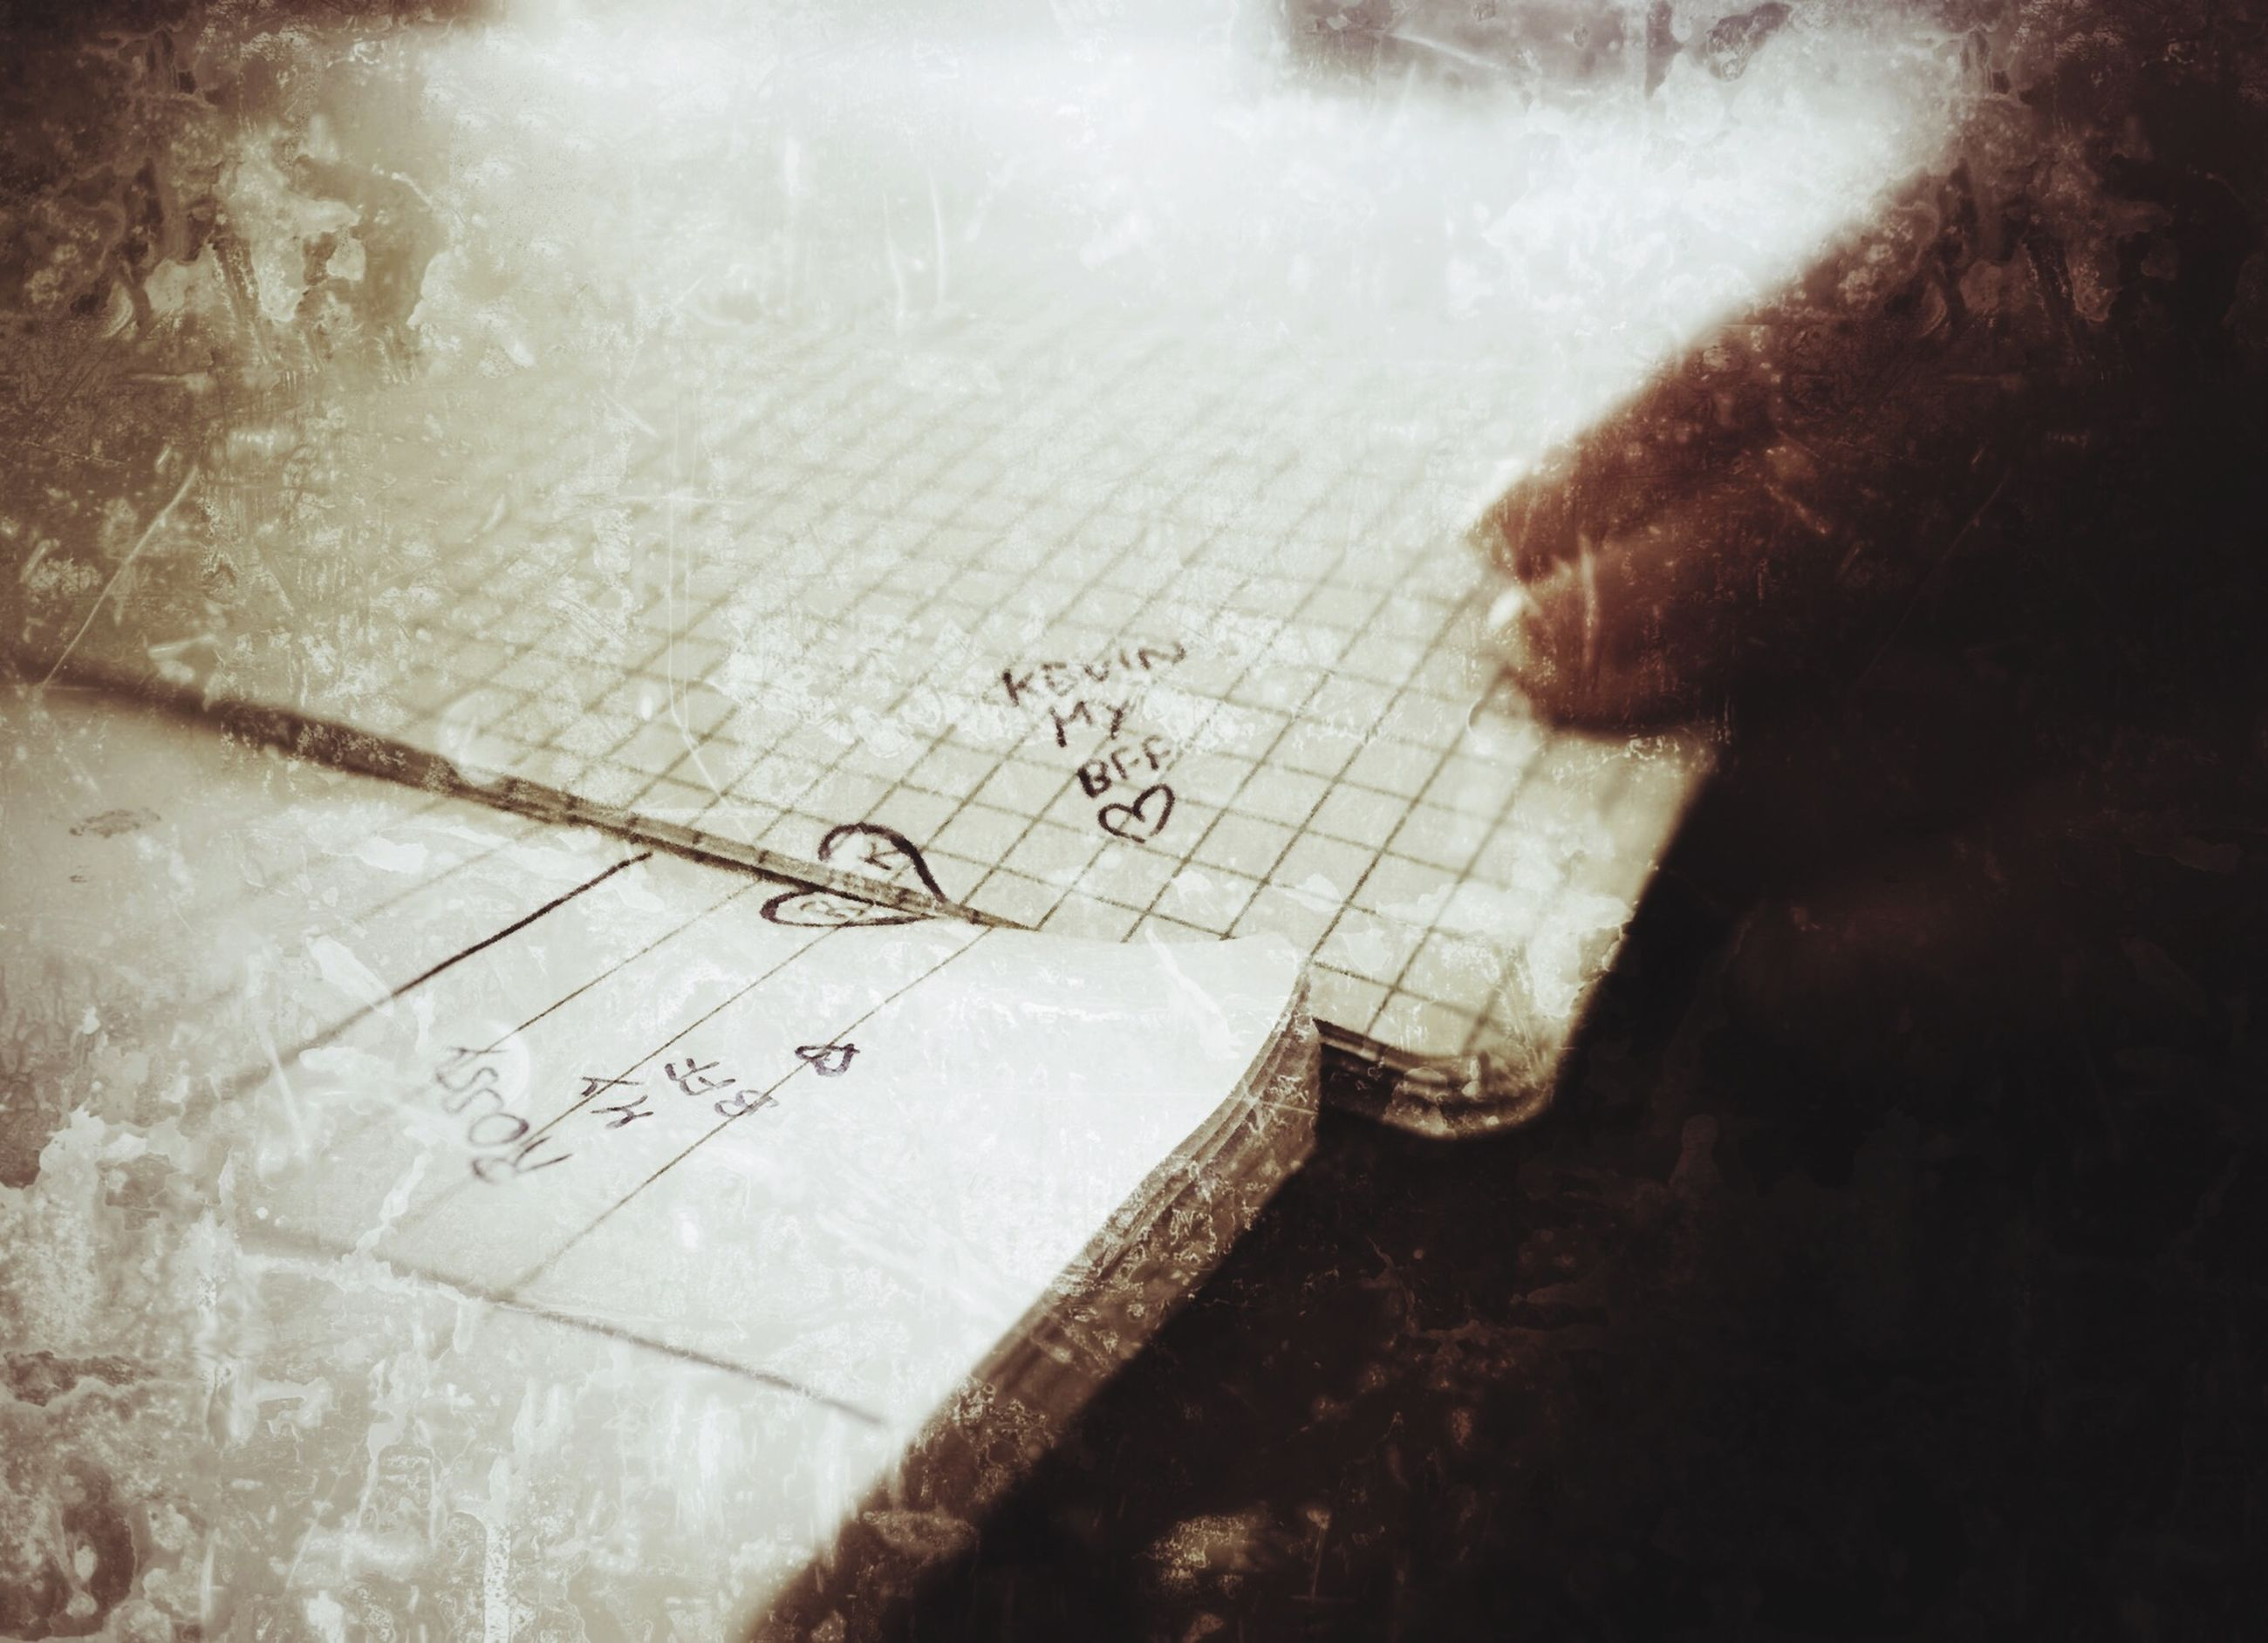 text, western script, indoors, communication, high angle view, art, close-up, wall - building feature, paper, creativity, graffiti, auto post production filter, art and craft, message, handwriting, ideas, wall, drawing - art product